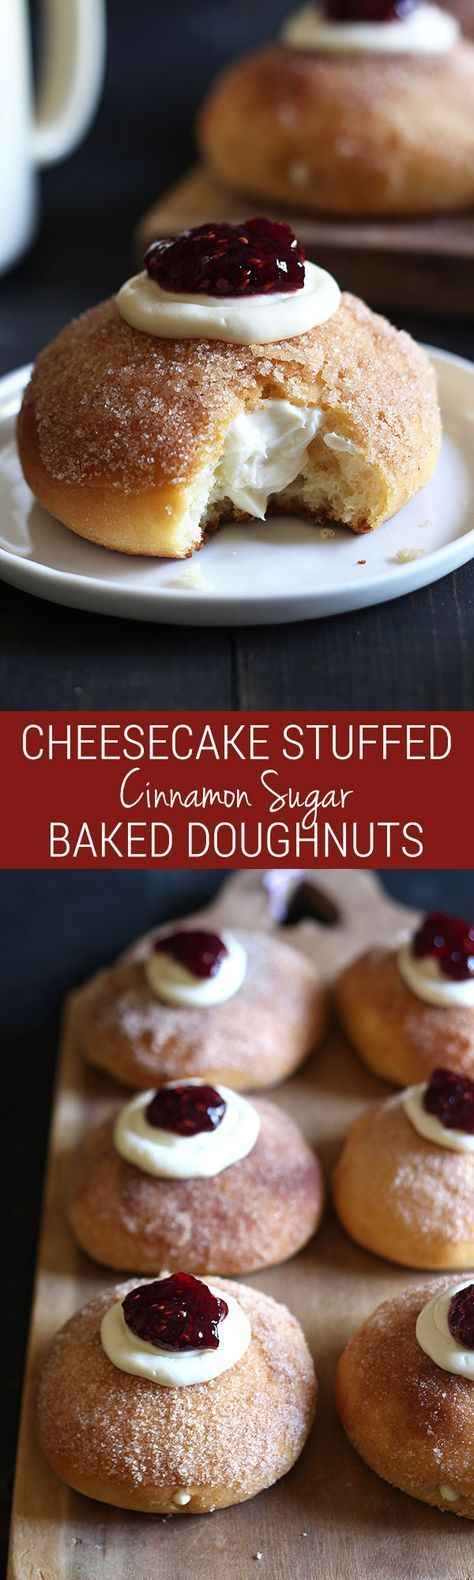 DYING!! These look SOOOO good! Cheesecake Stuffed Baked Doughnuts feature a fluffy yeast-raised baked doughnut coated in cinnamon sugar, stuffed with sweetened cream cheese, and topped with a dollop of raspberry jam.: